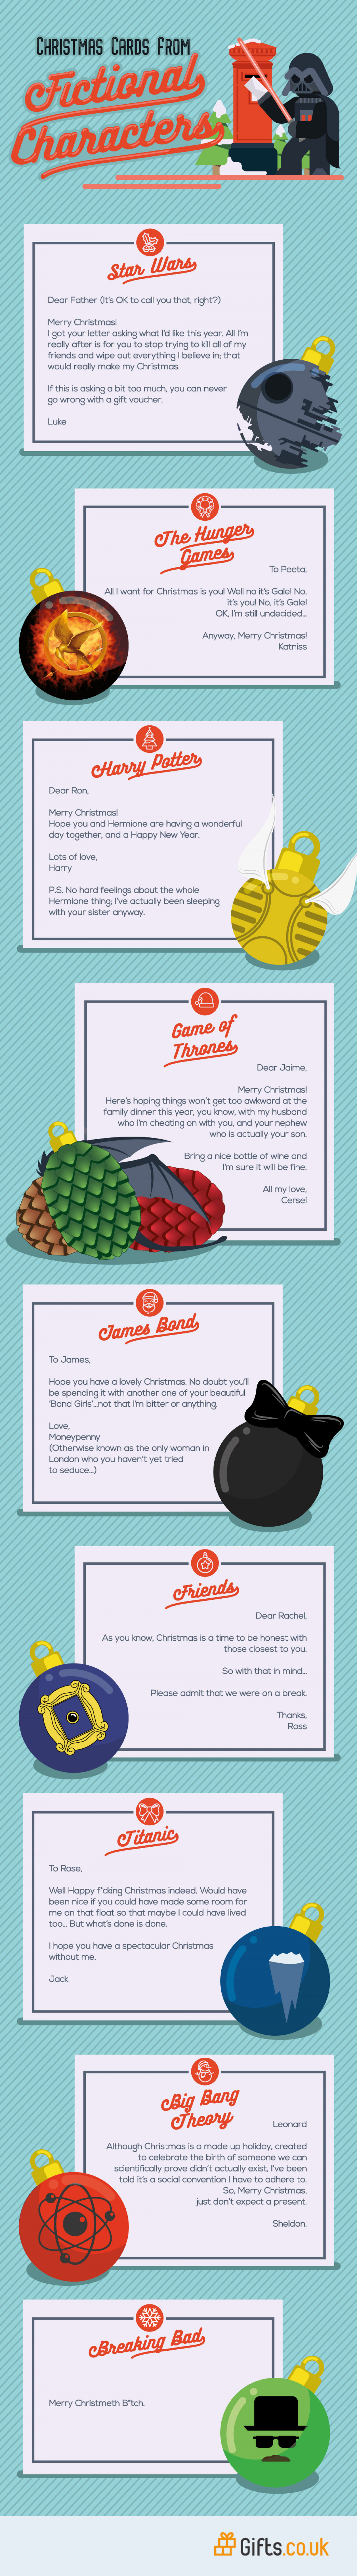 Christmas Cards from Fictional Characters Infographic